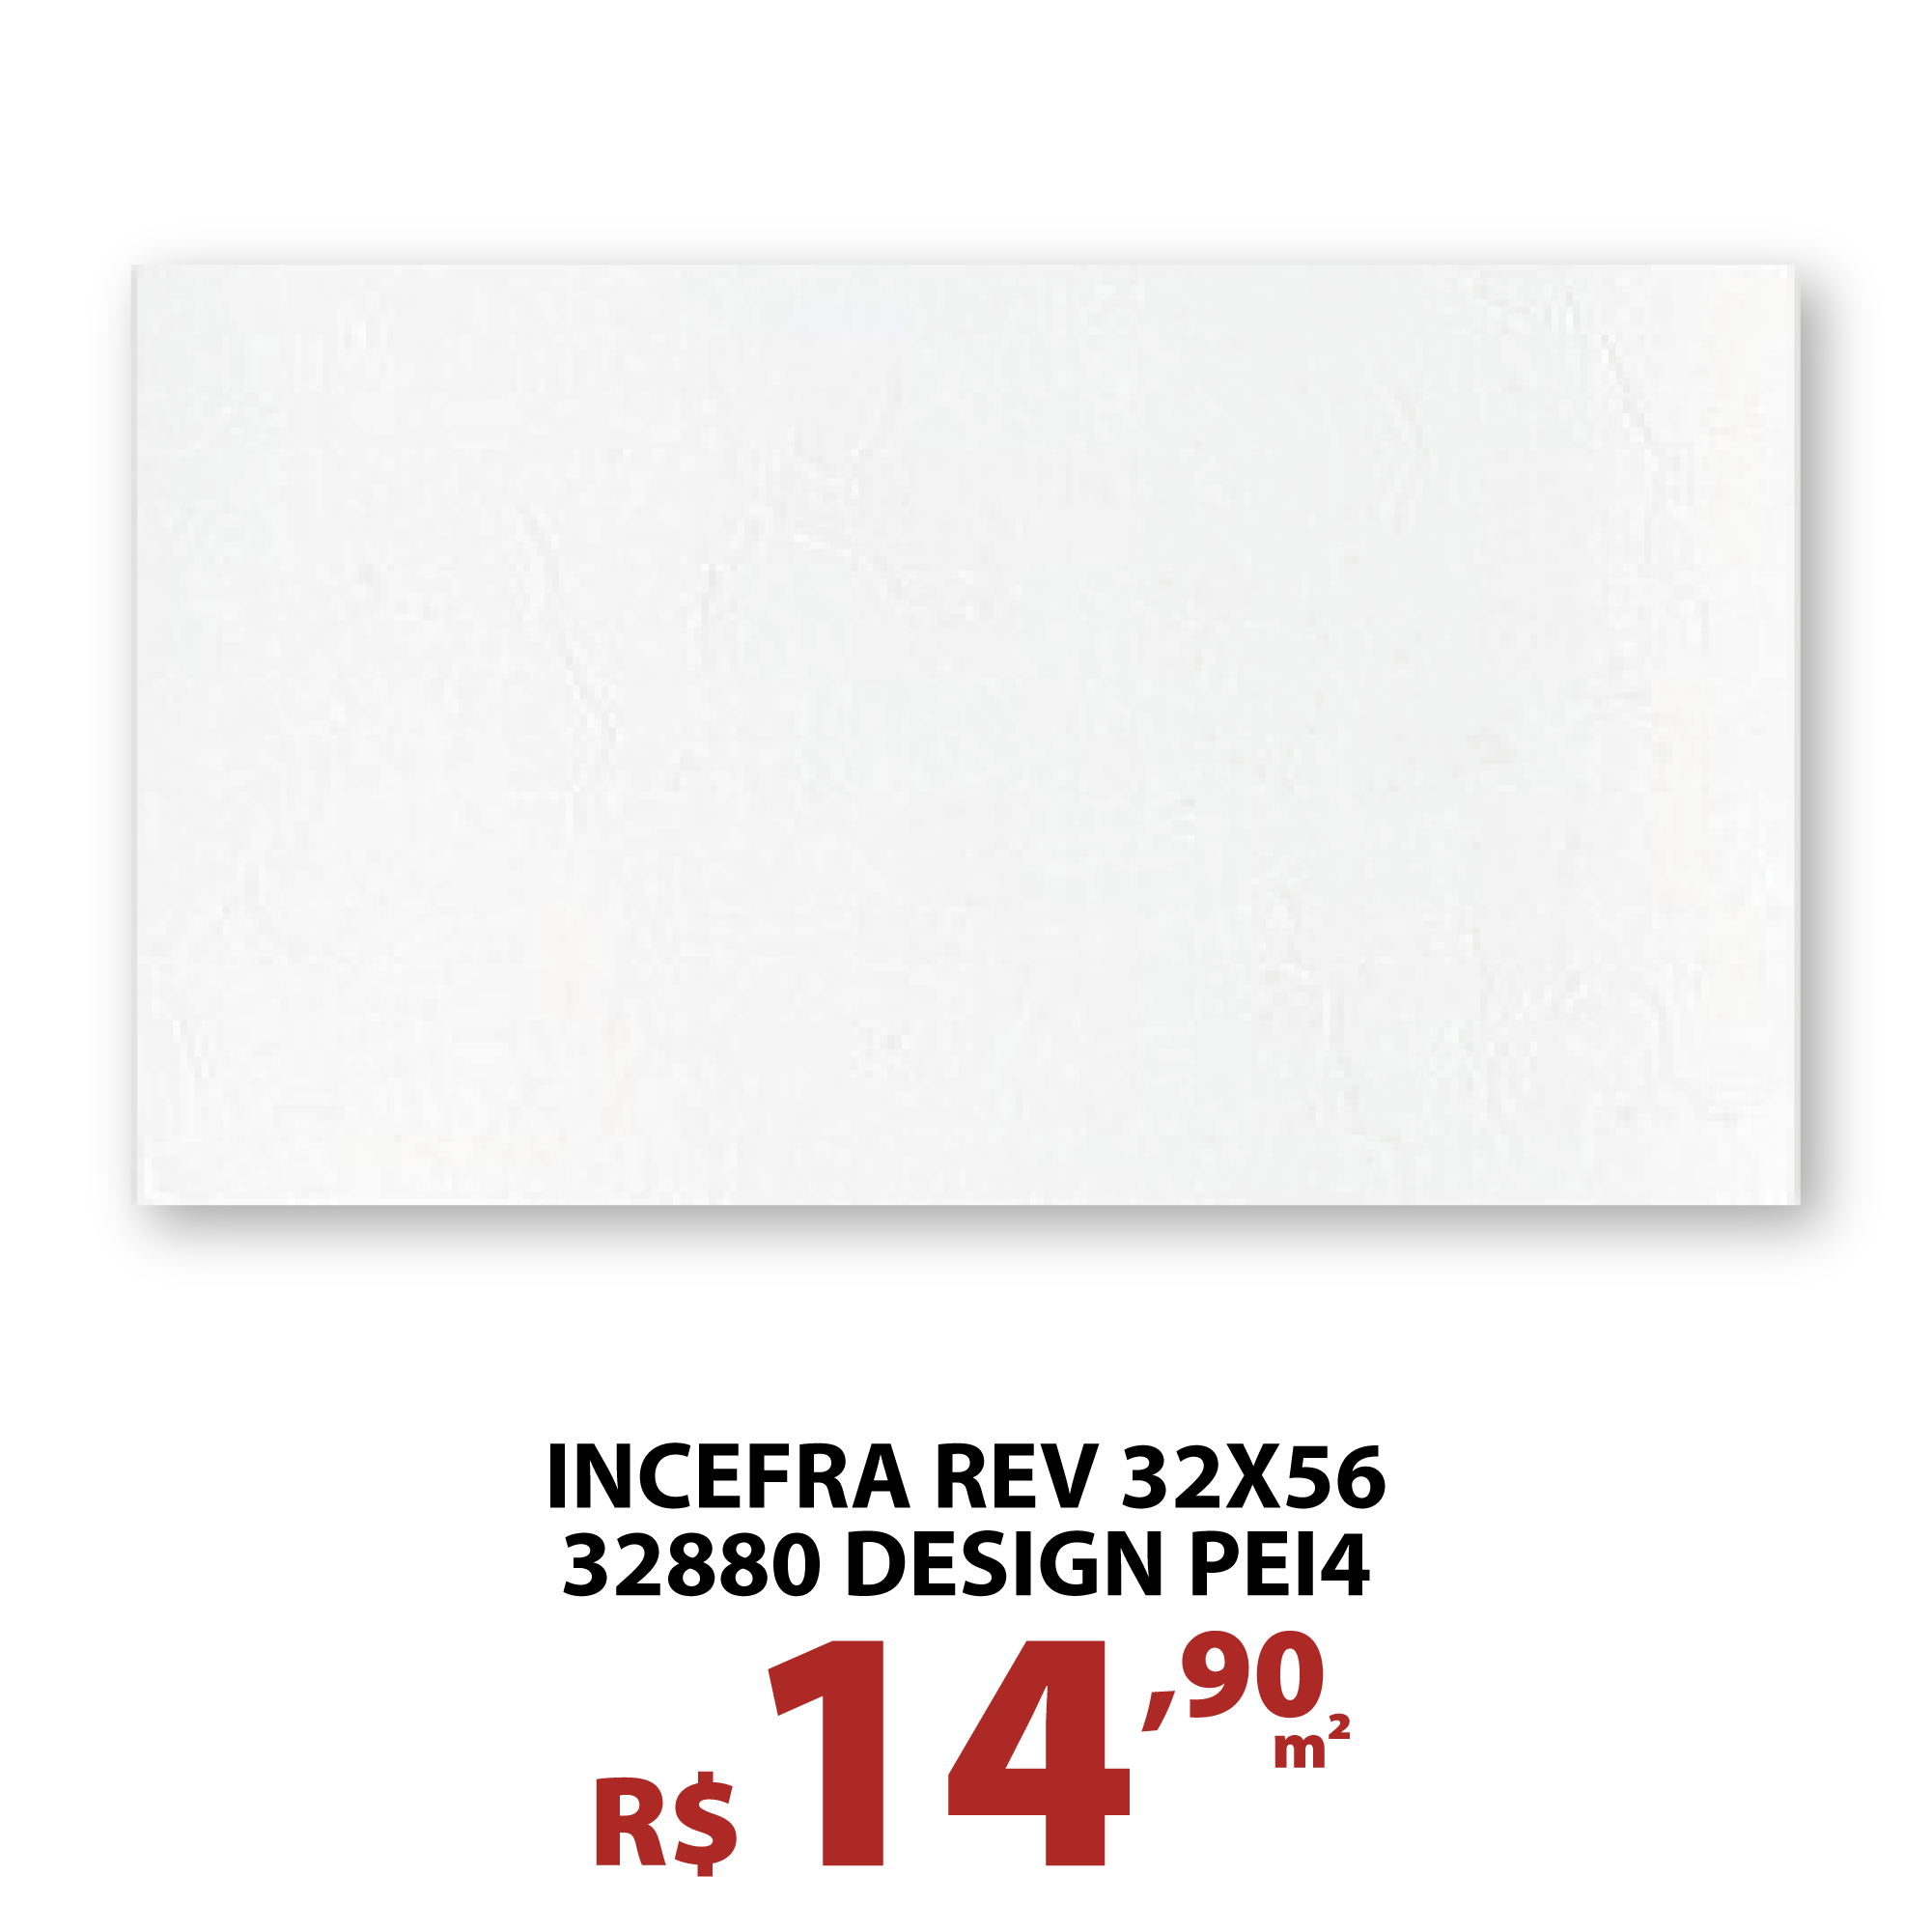 INCEFRA REV 32X56 32880 DESIGN PEI4